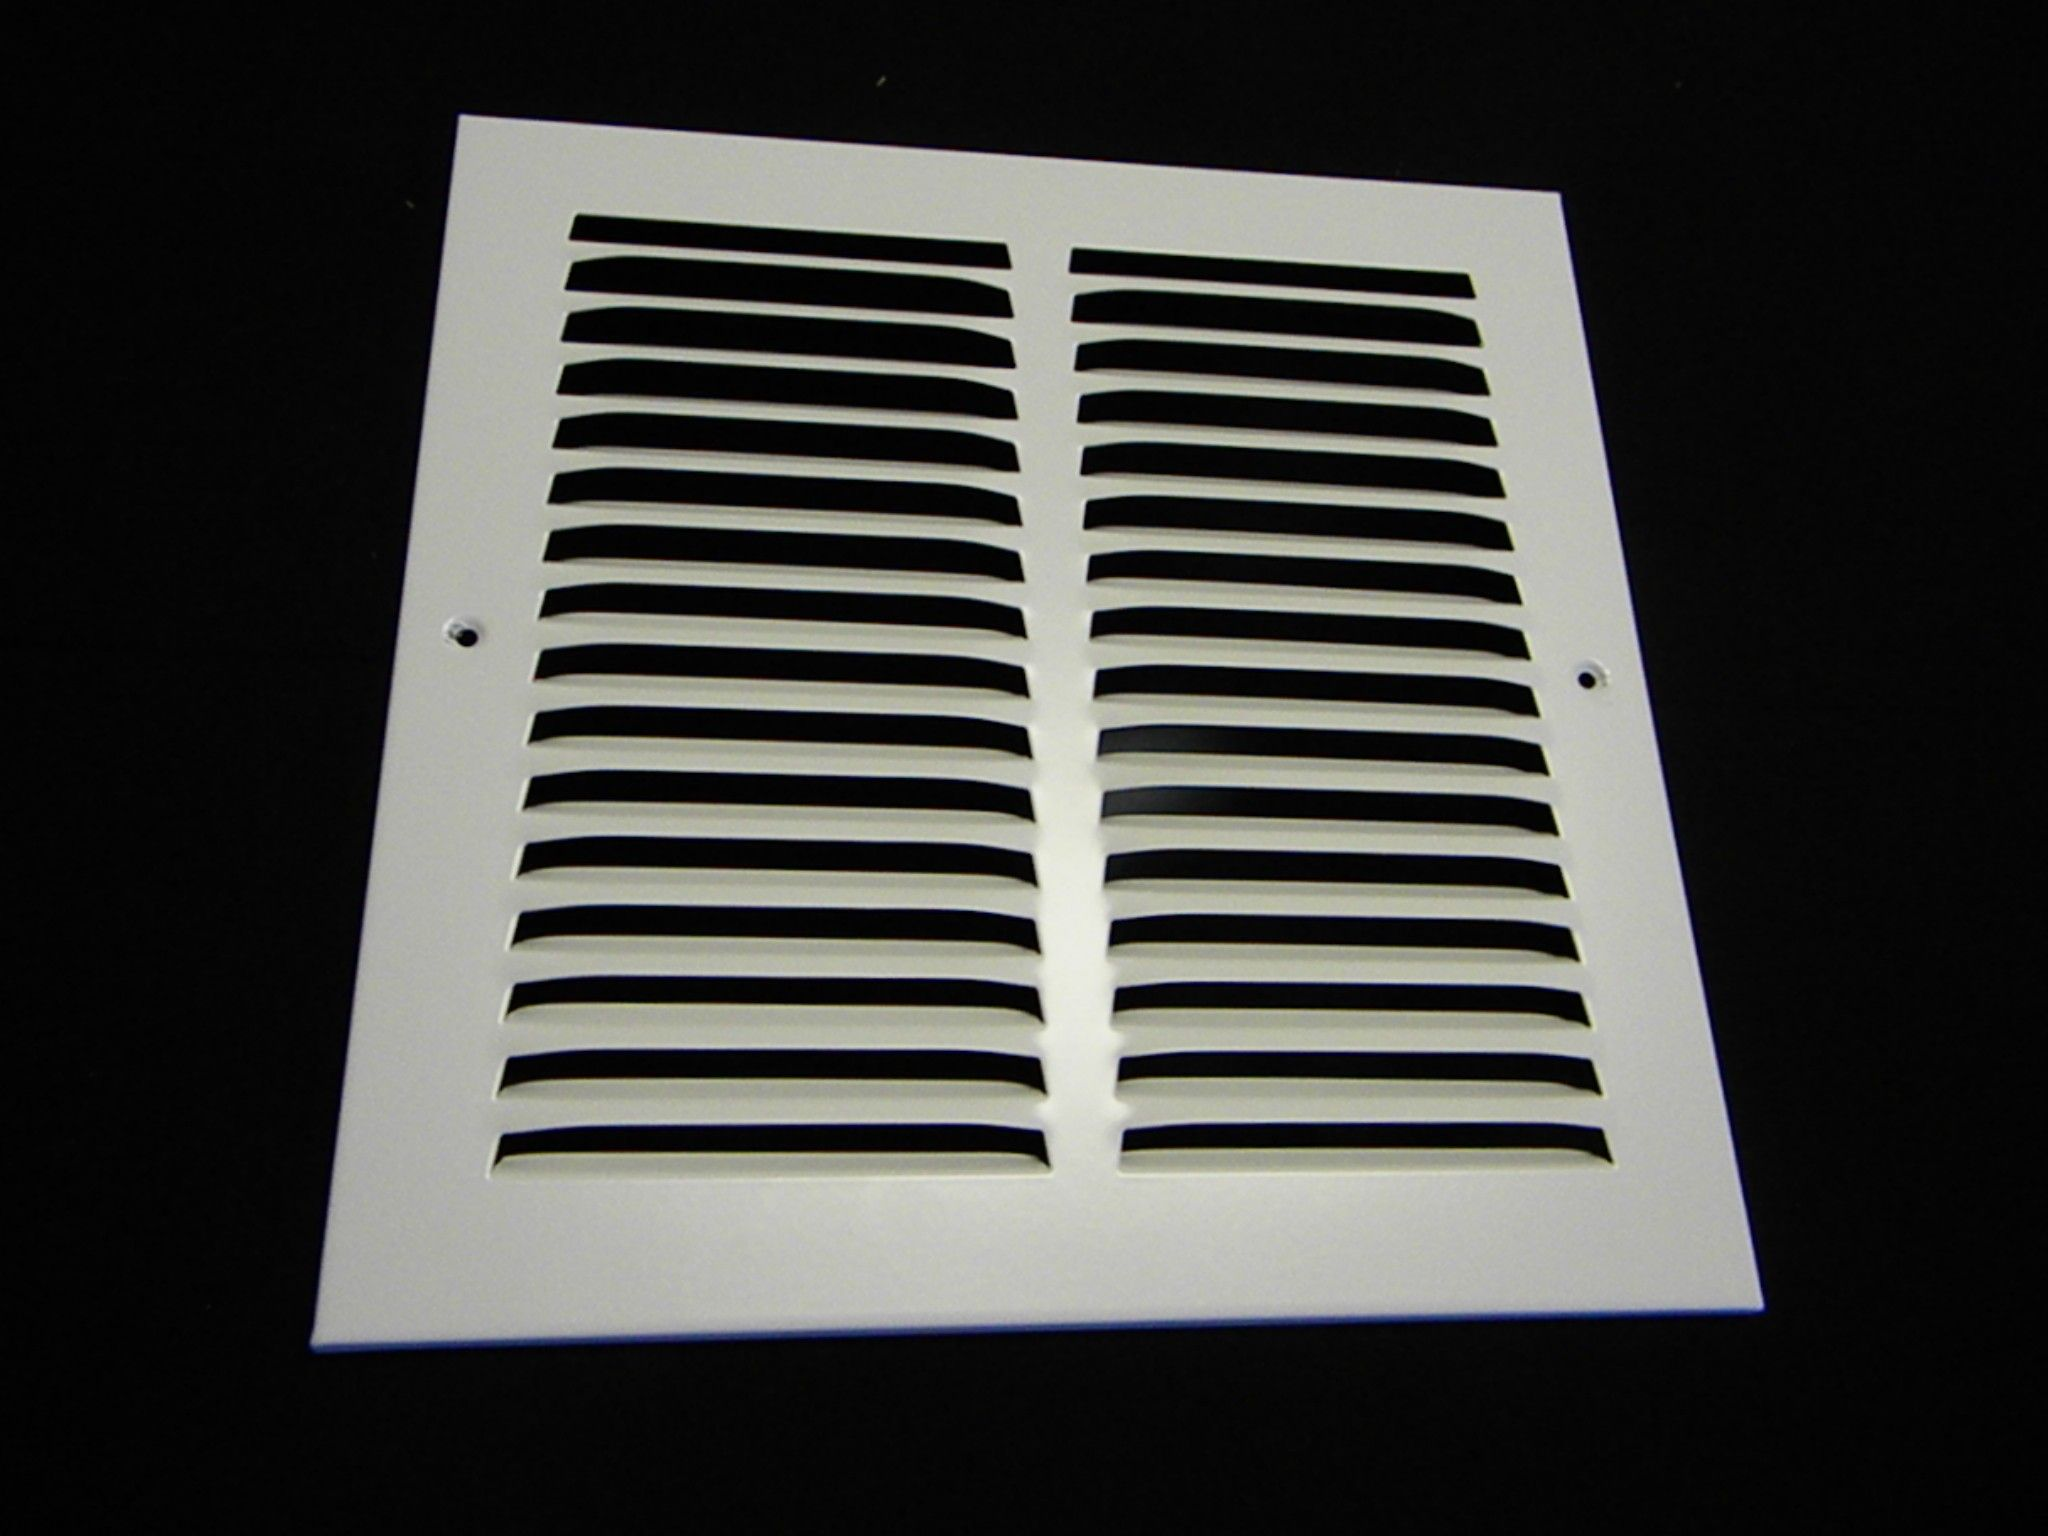 14x14 Return Stamped Grille